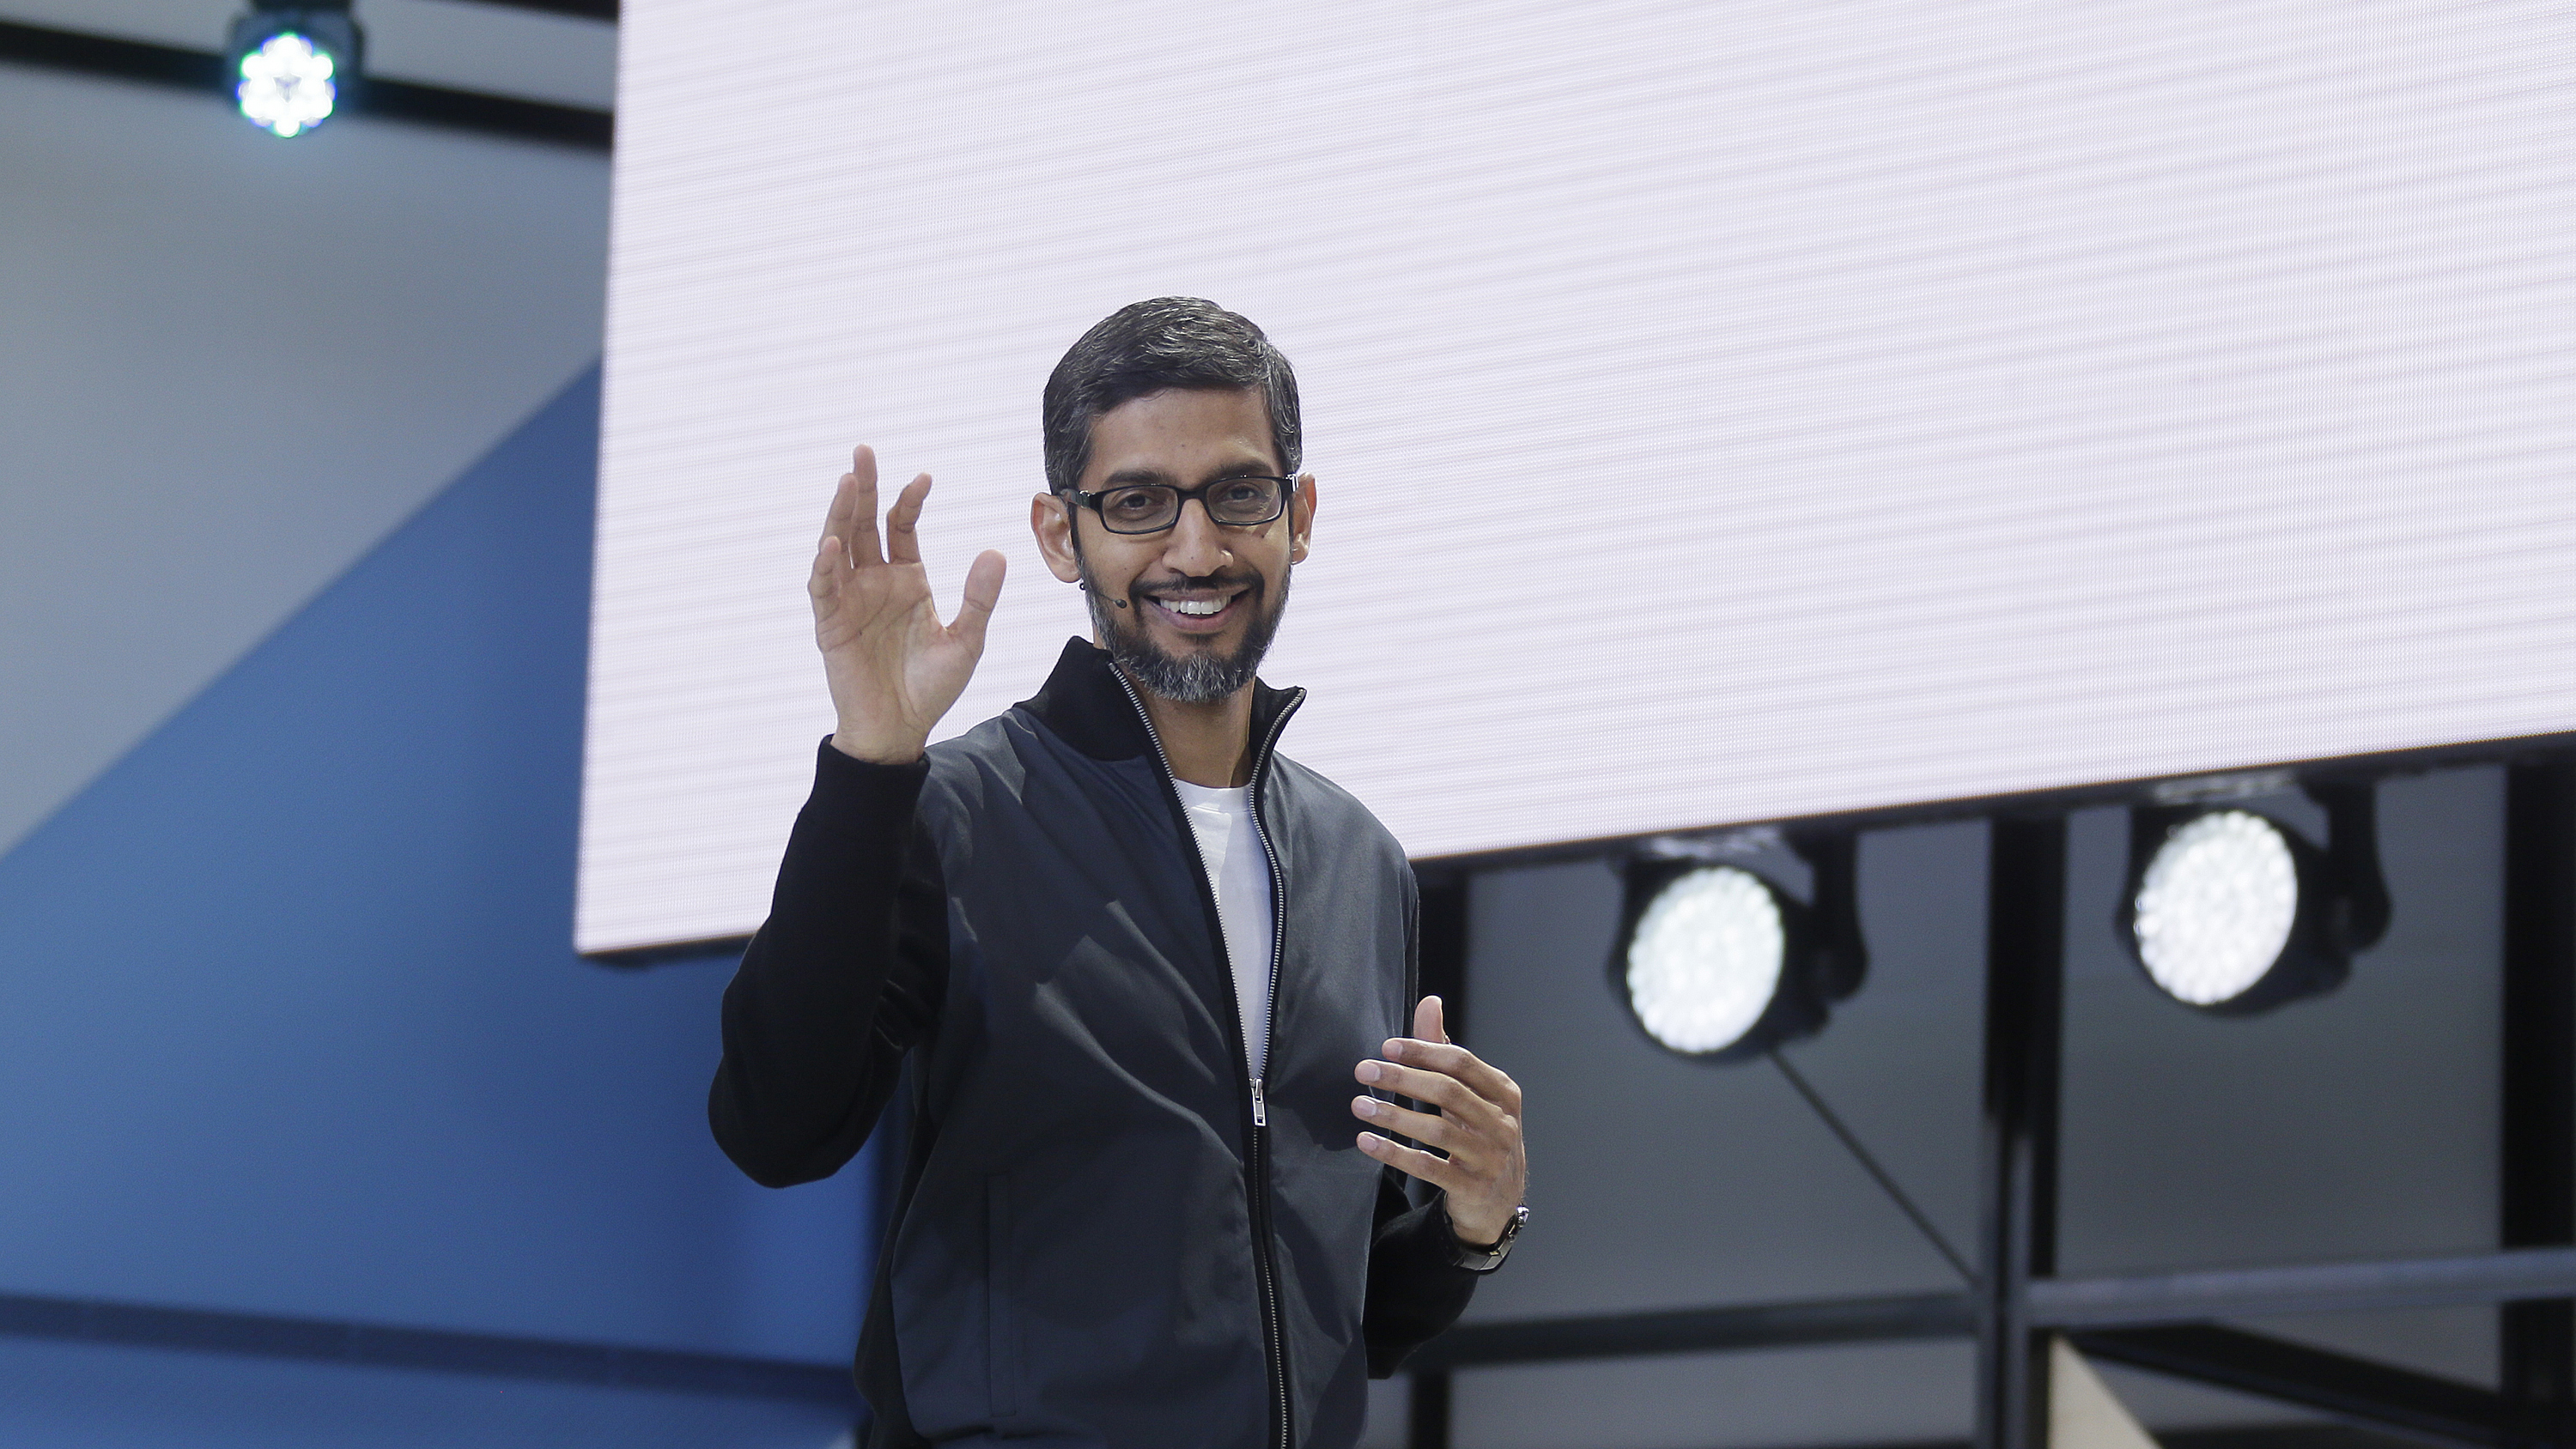 Google CEO Sundar Pichai delivers the keynote address of the Google I/O conference Wednesday, May 17, 2017, in Mountain View, Calif. Google provided the latest peek at the digital services and gadgets that it has assembled in the high-tech tussle to become an even more influential force in people's lives.(AP Photo/Eric Risberg)